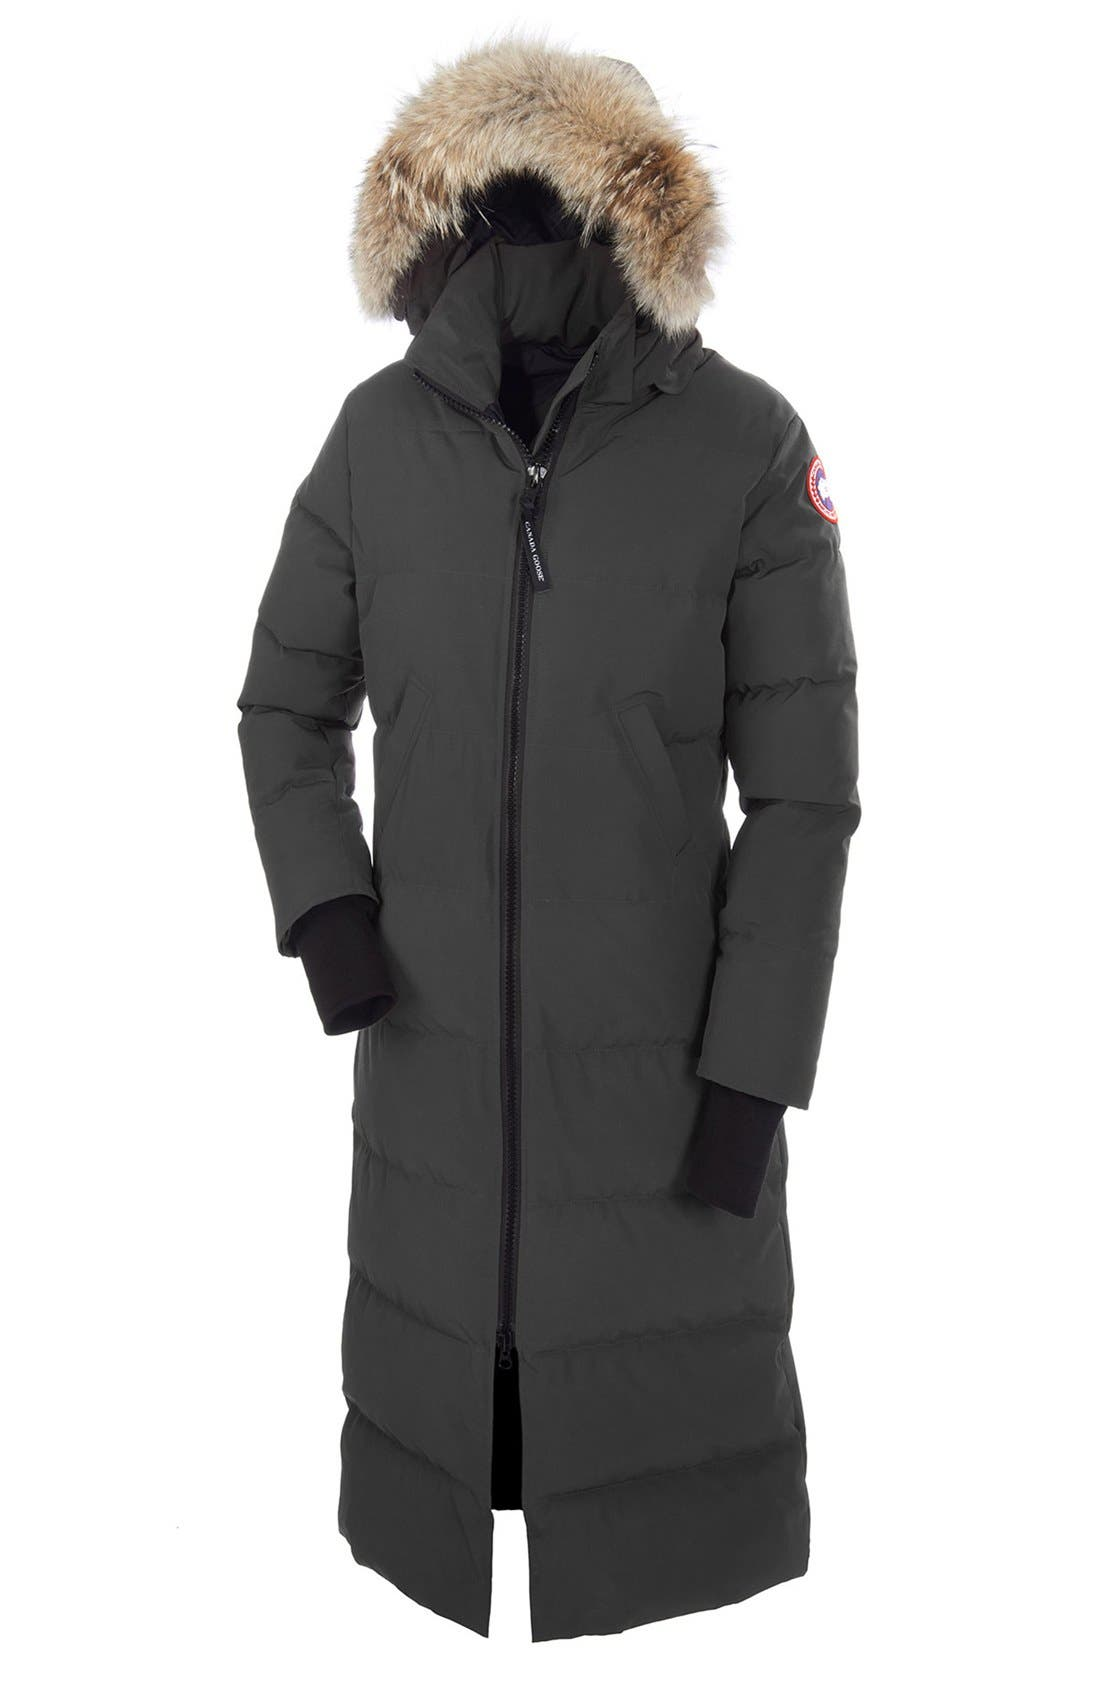 CANADA GOOSE 'Mystique' Regular Fit Down Parka with